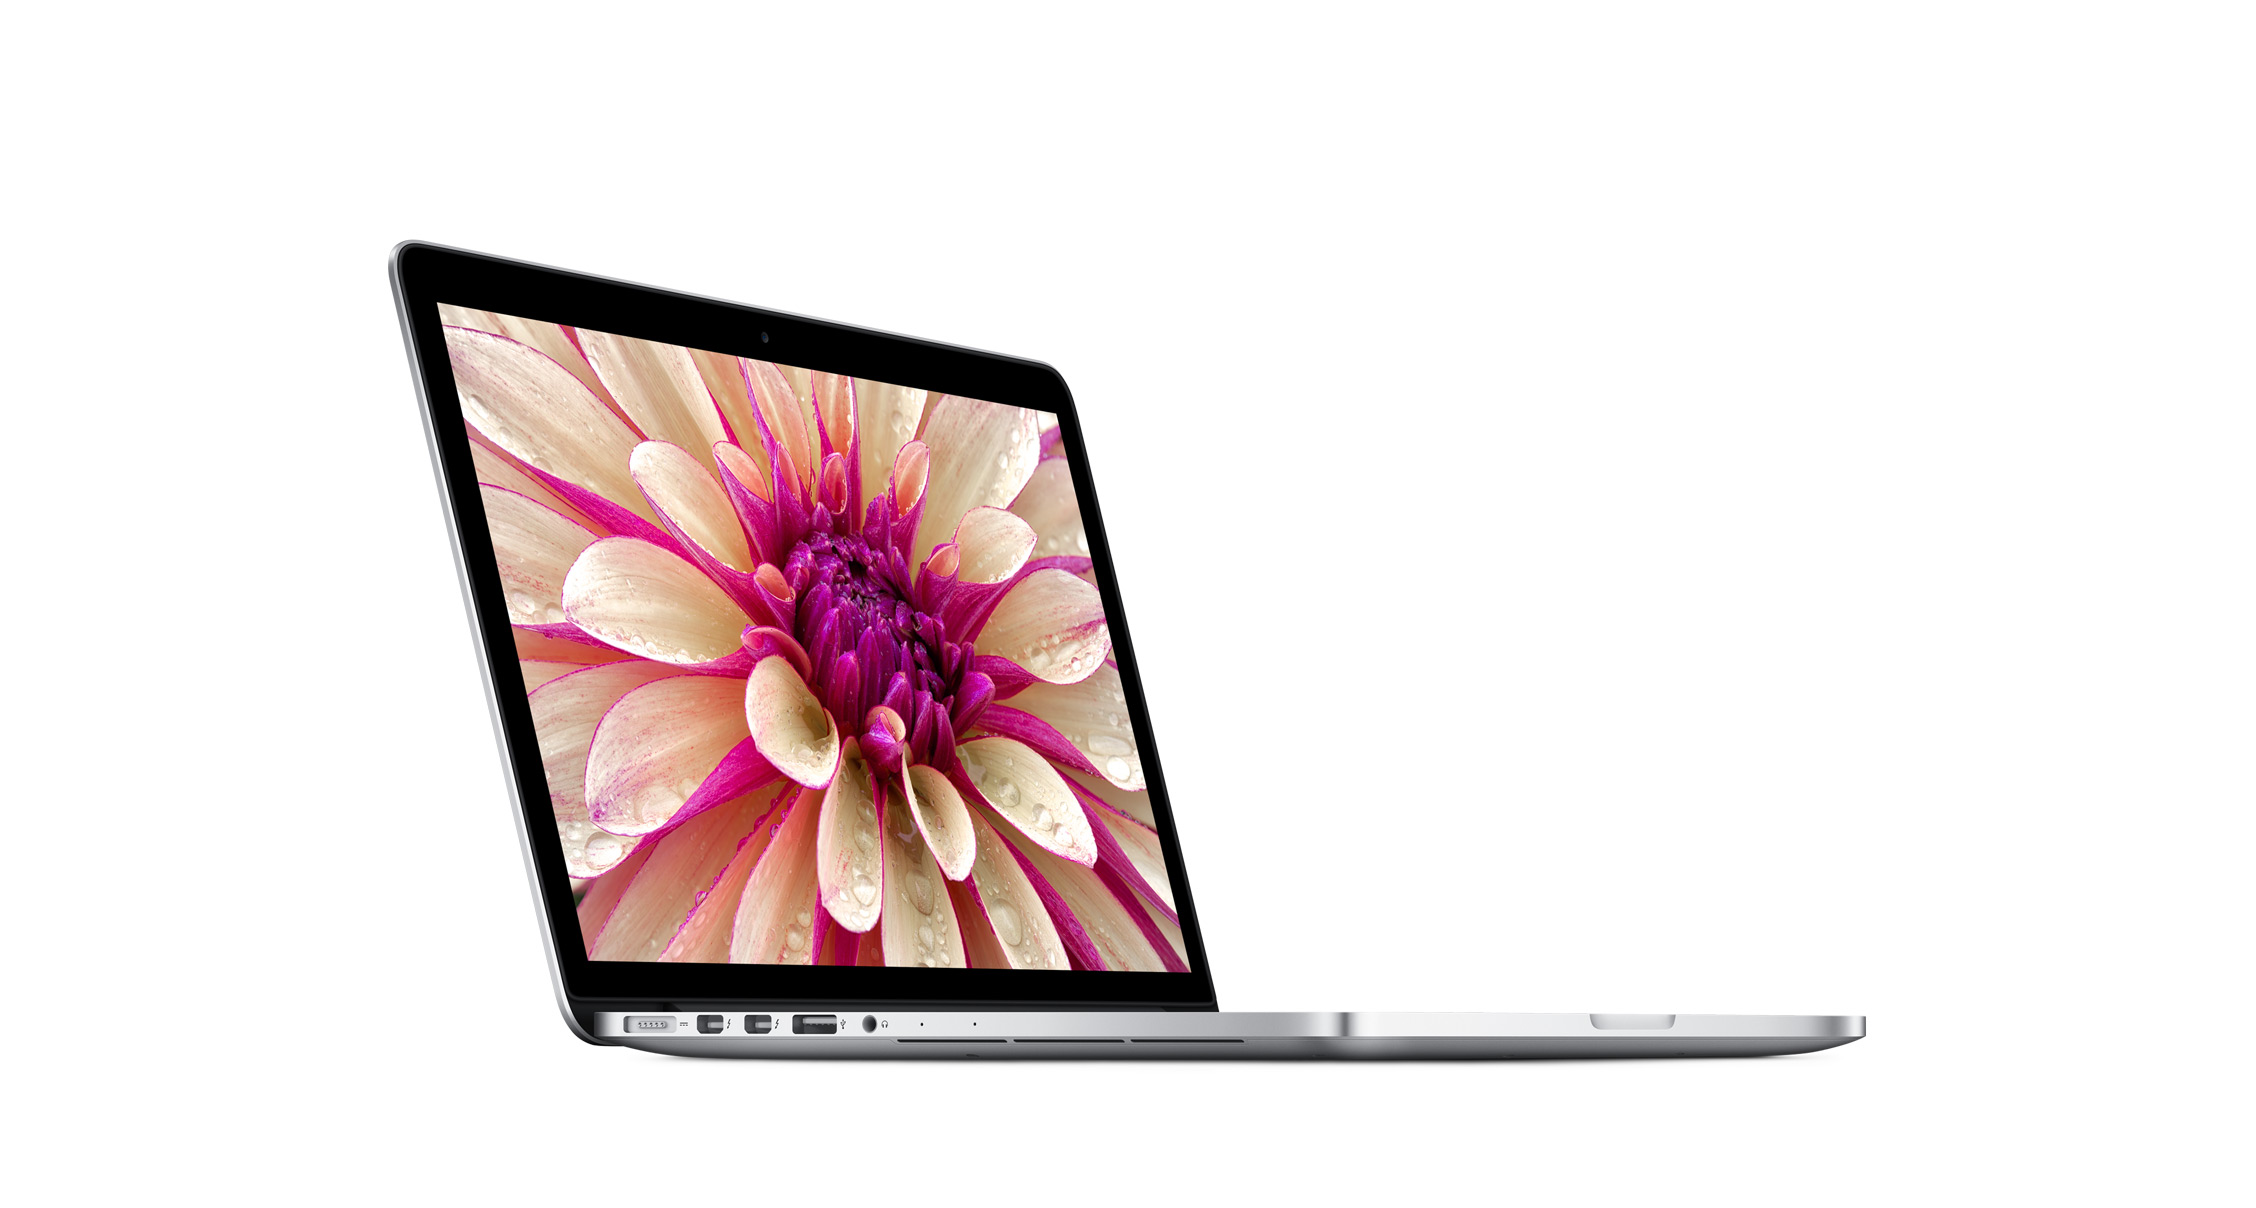 The Macbook Pro 13-inch 2015